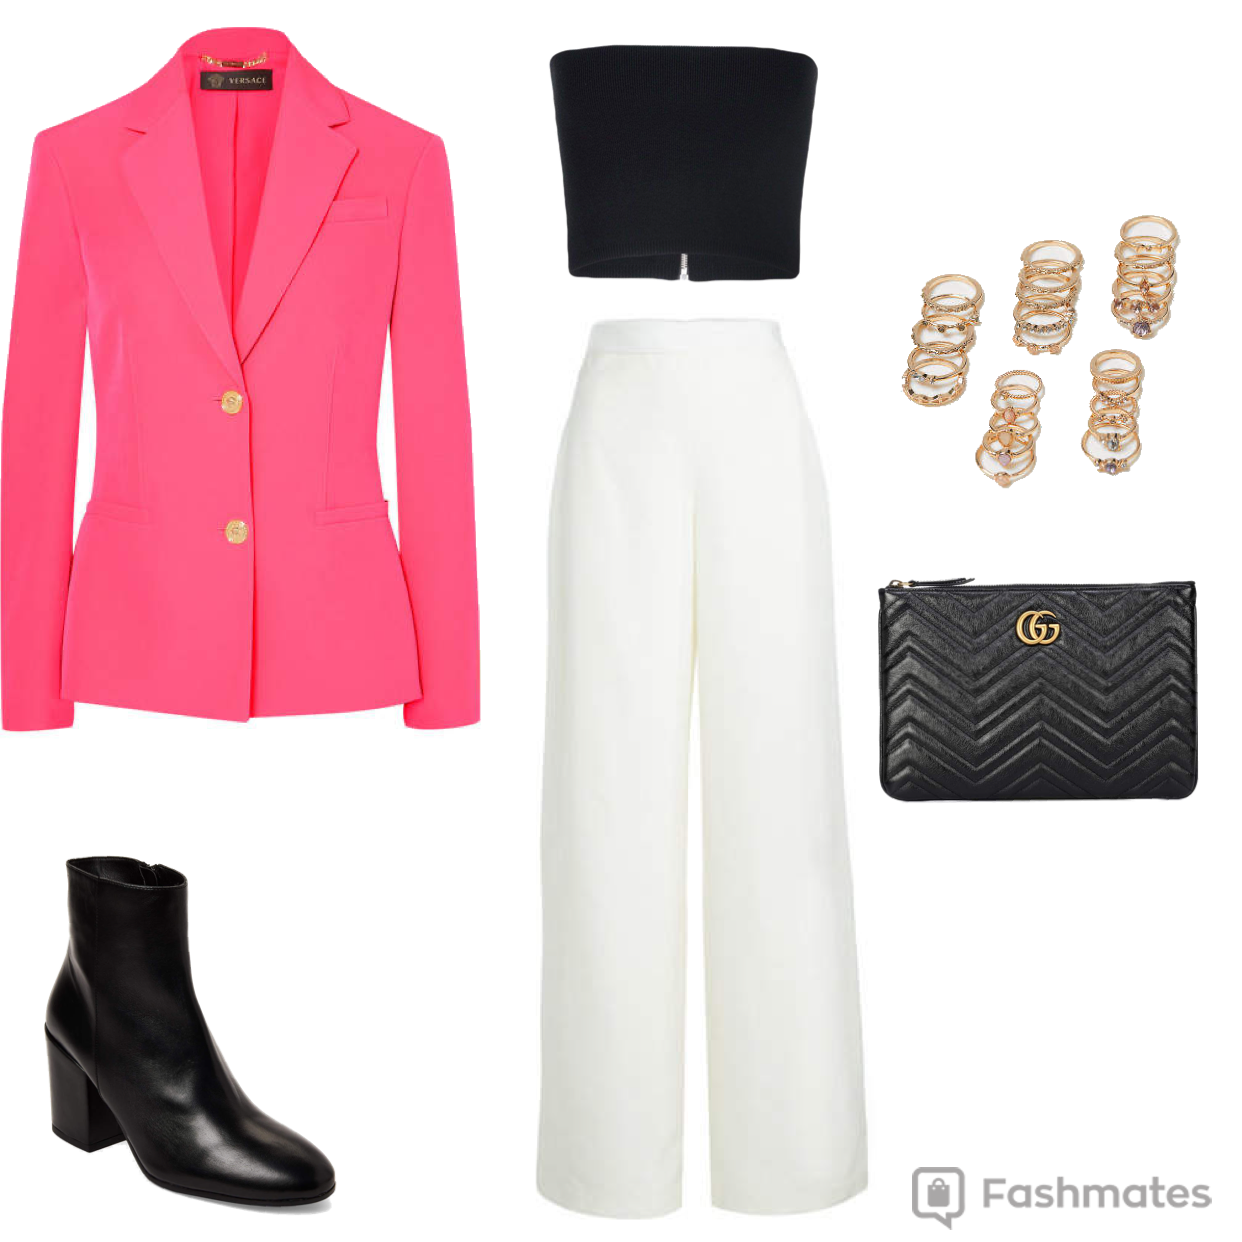 Outfit Inspiration Harry Styles Fine Line Outfit Inspo With